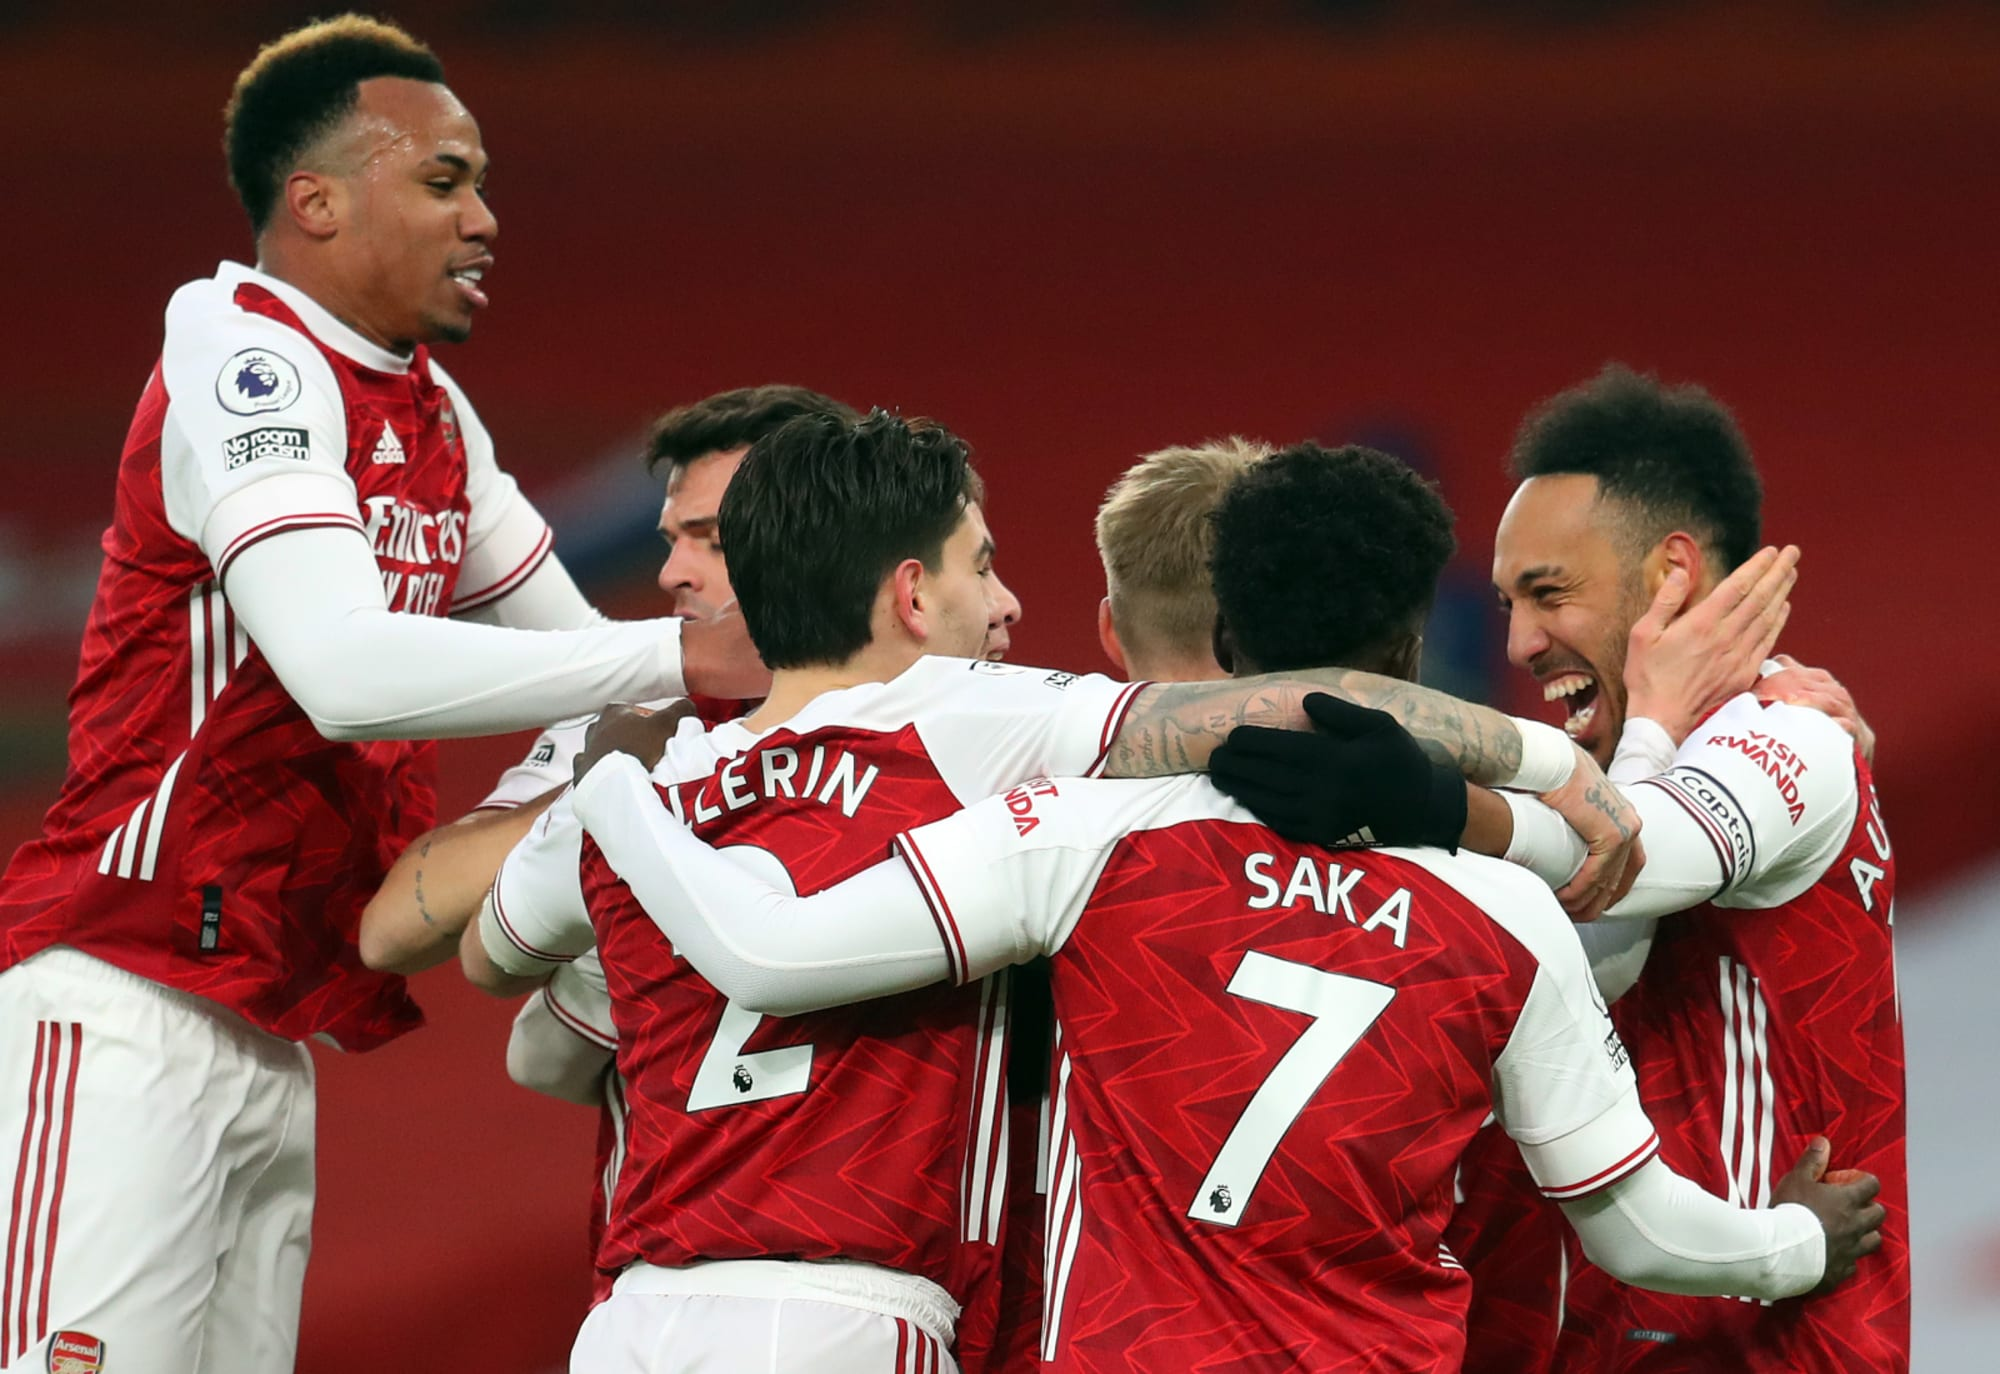 Arsenal vs Benfica: Starting lineup needs one key element - Pain In The Arsenal